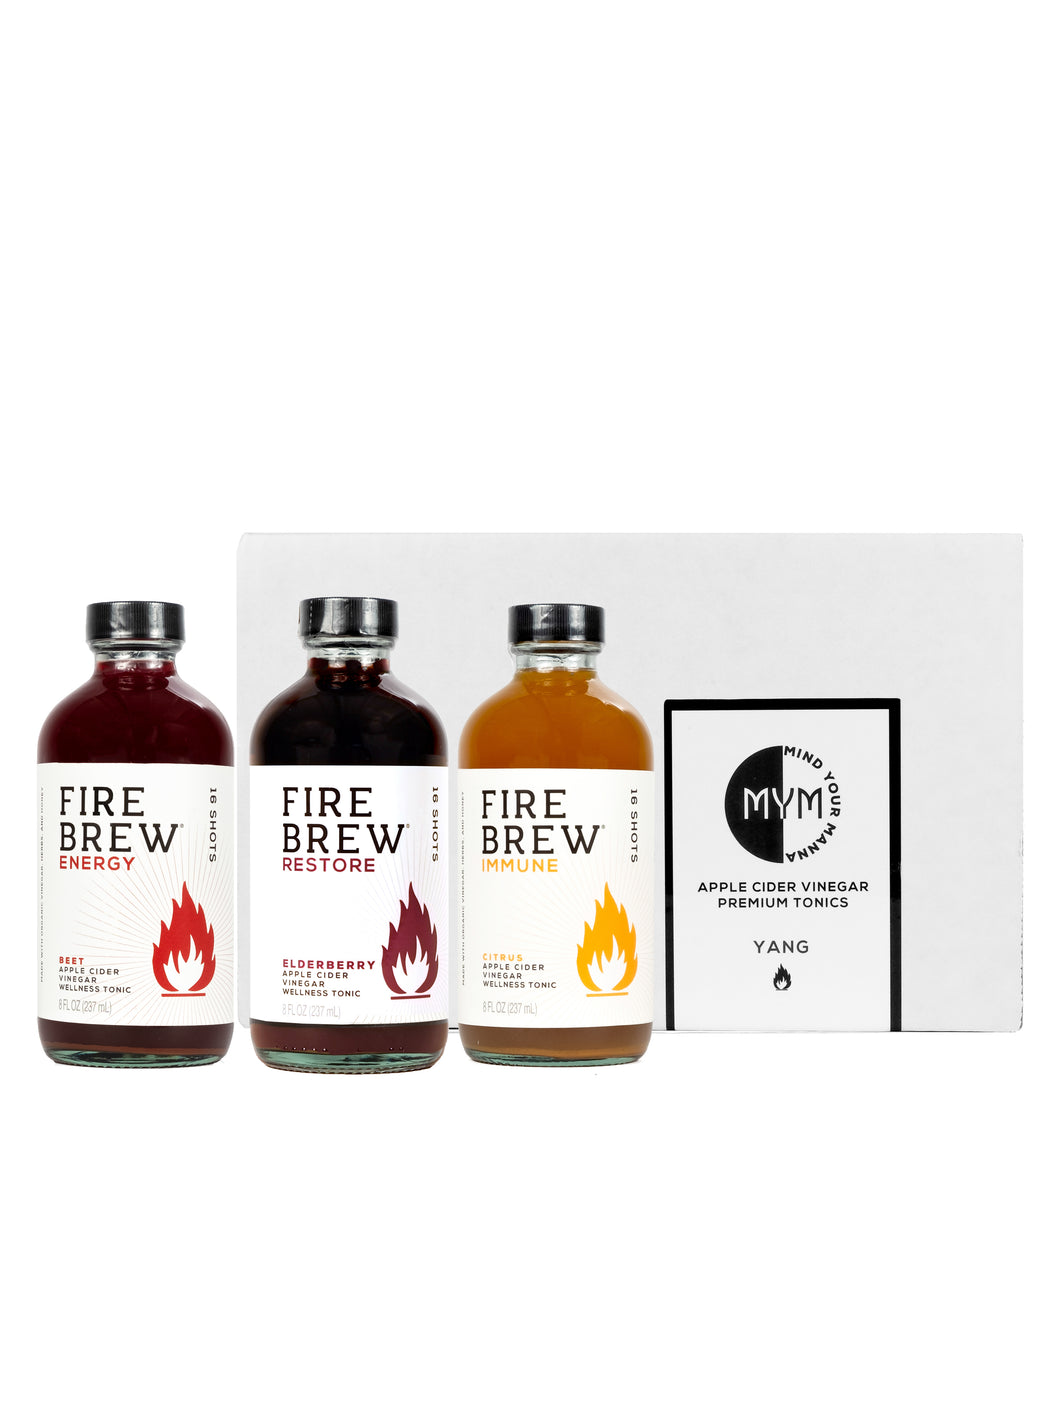 Fire Brew | Yang 8oz Gift Box | Apple Cider Vinegar Superfood Tonic